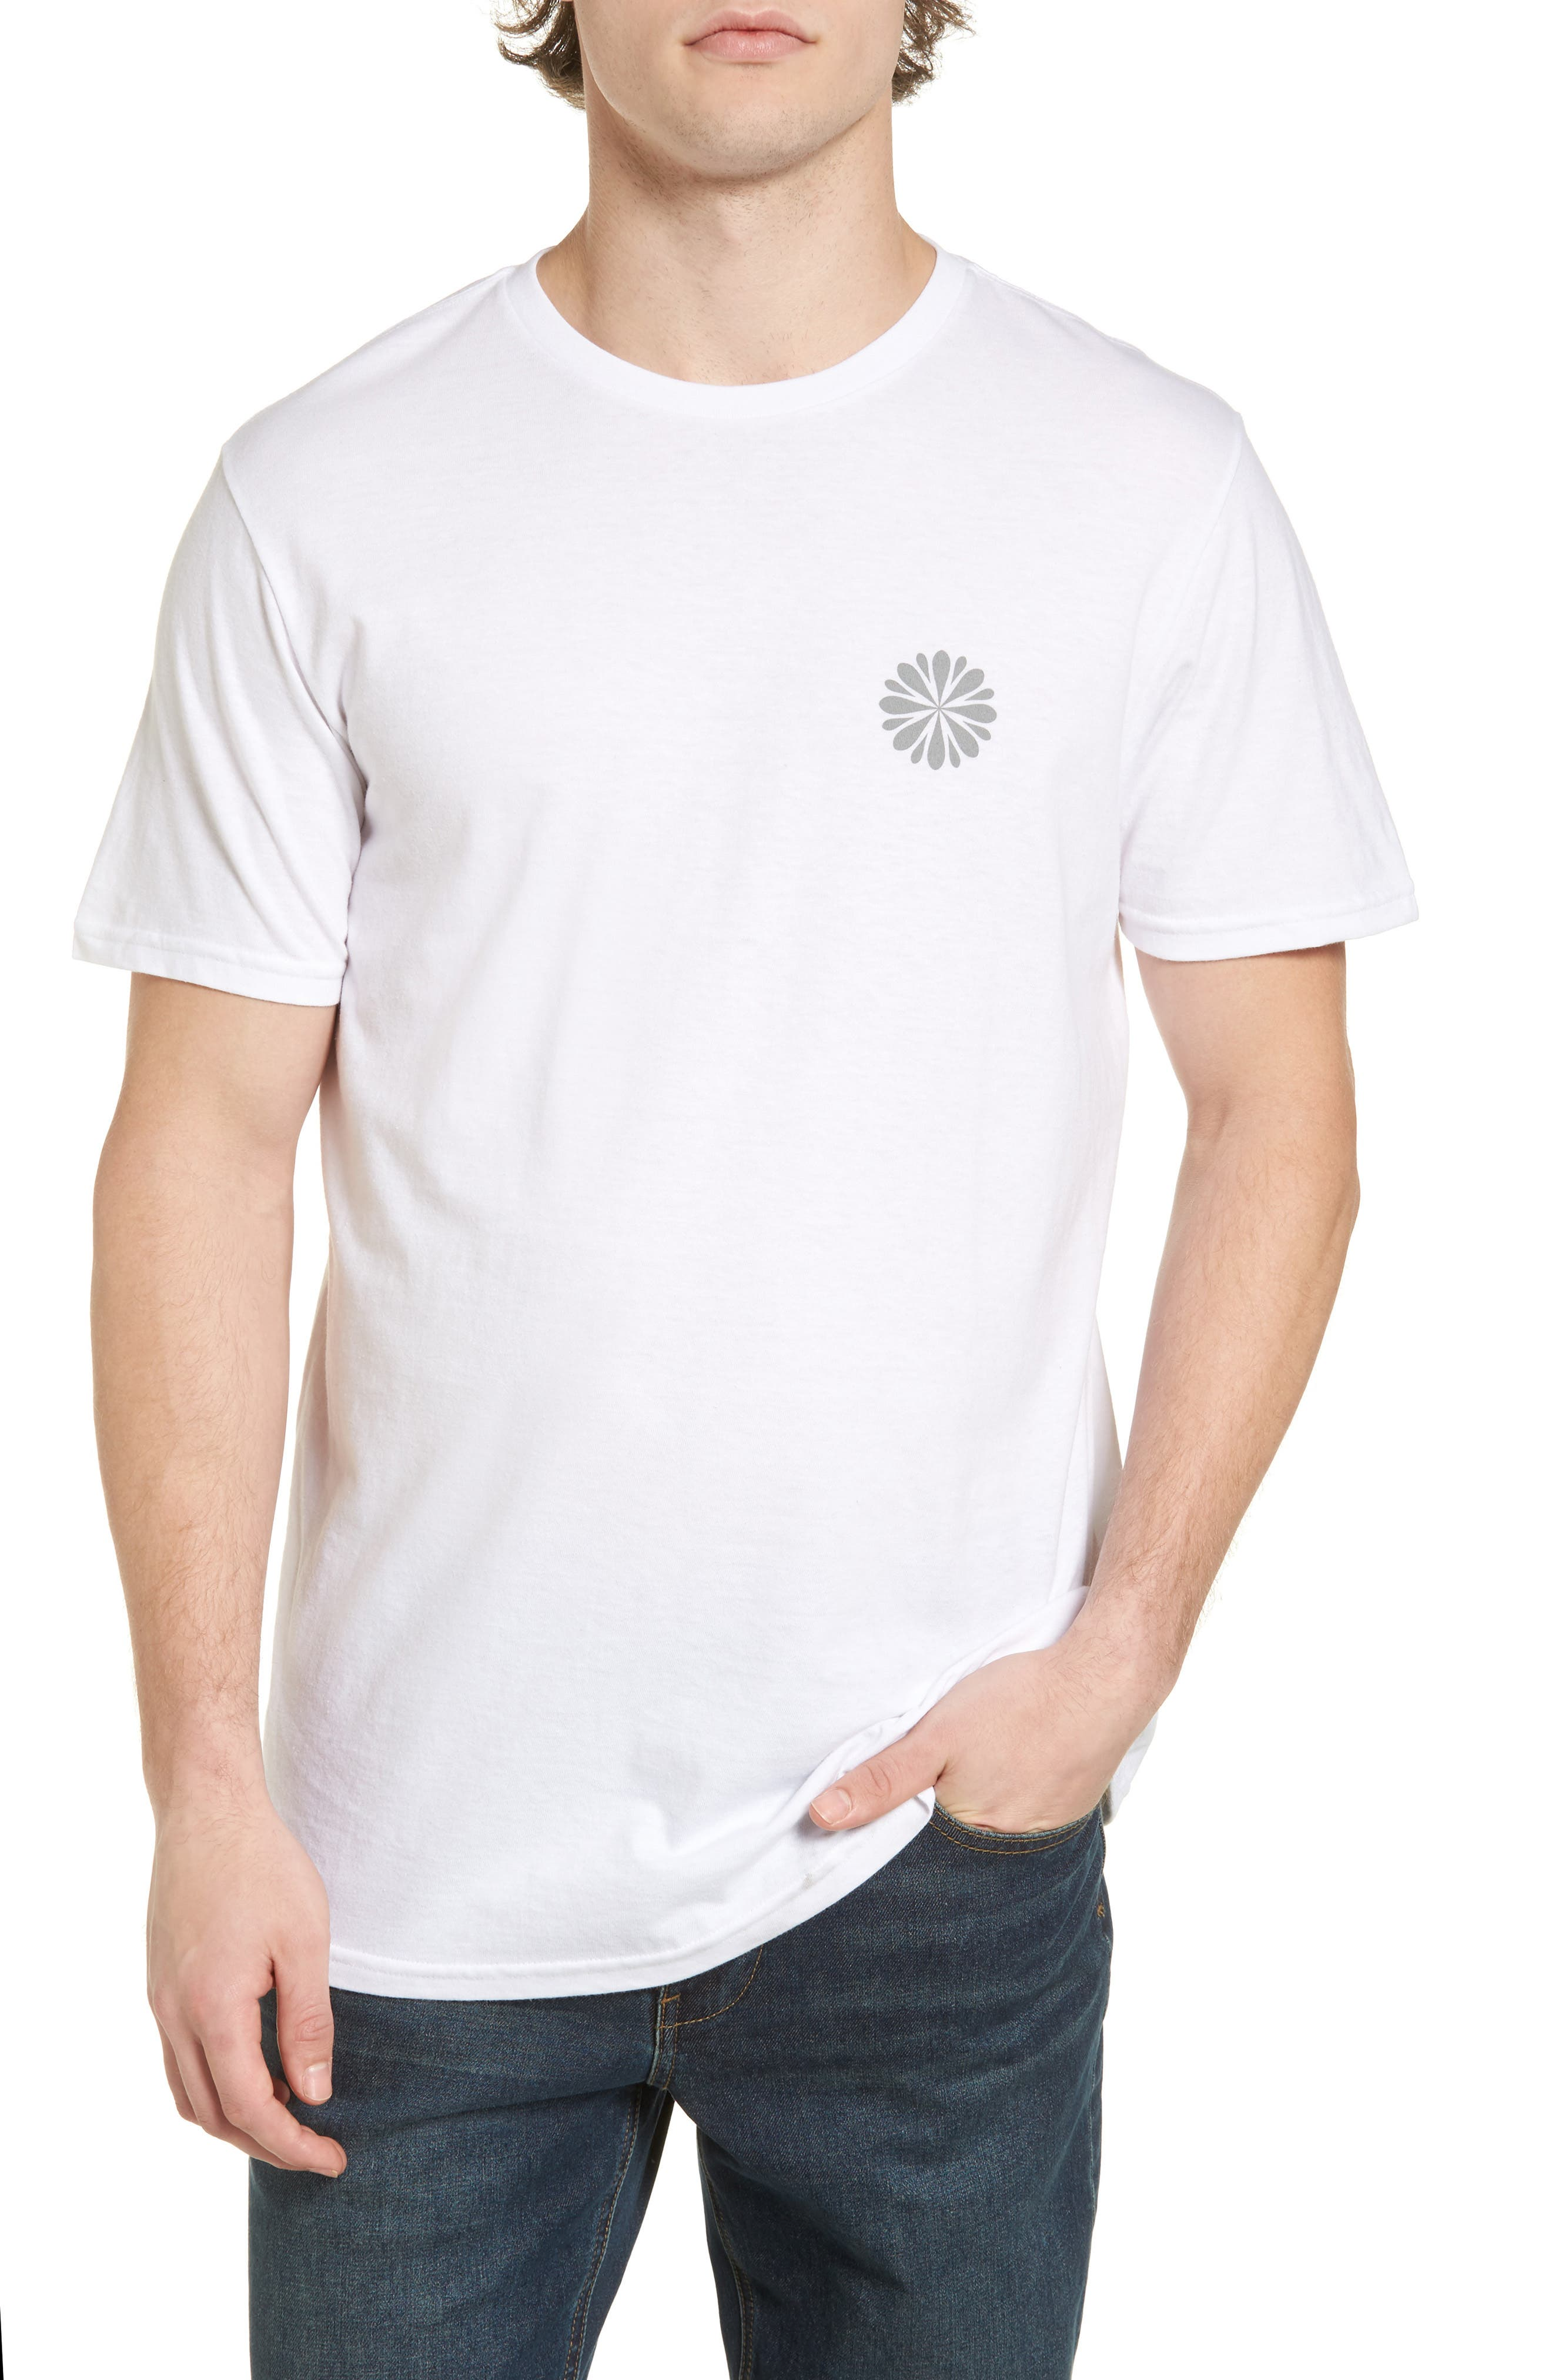 Sequence T-Shirt,                         Main,                         color, 100